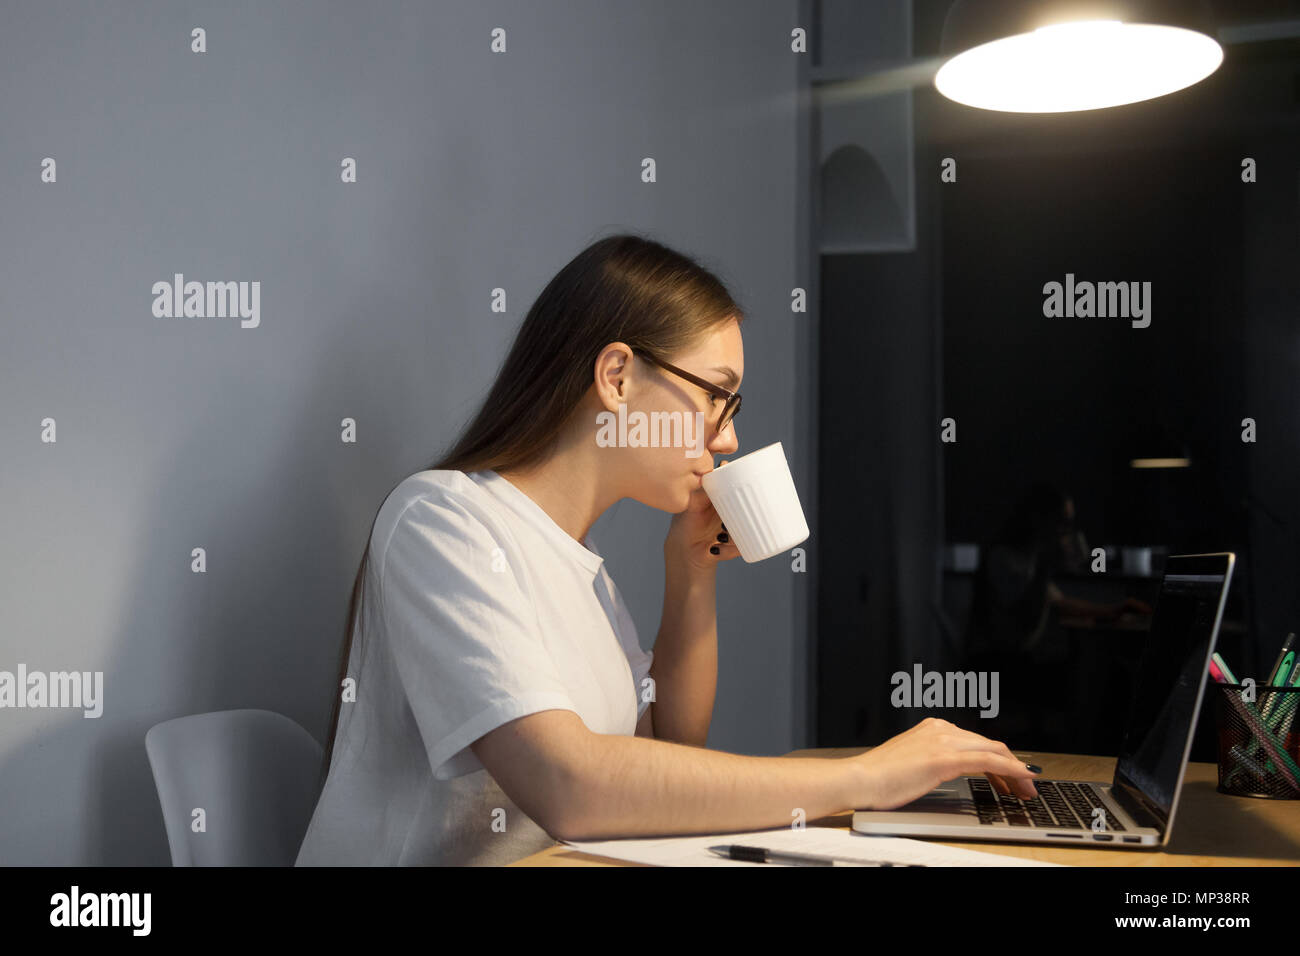 Female worker having coffee while working late - Stock Image